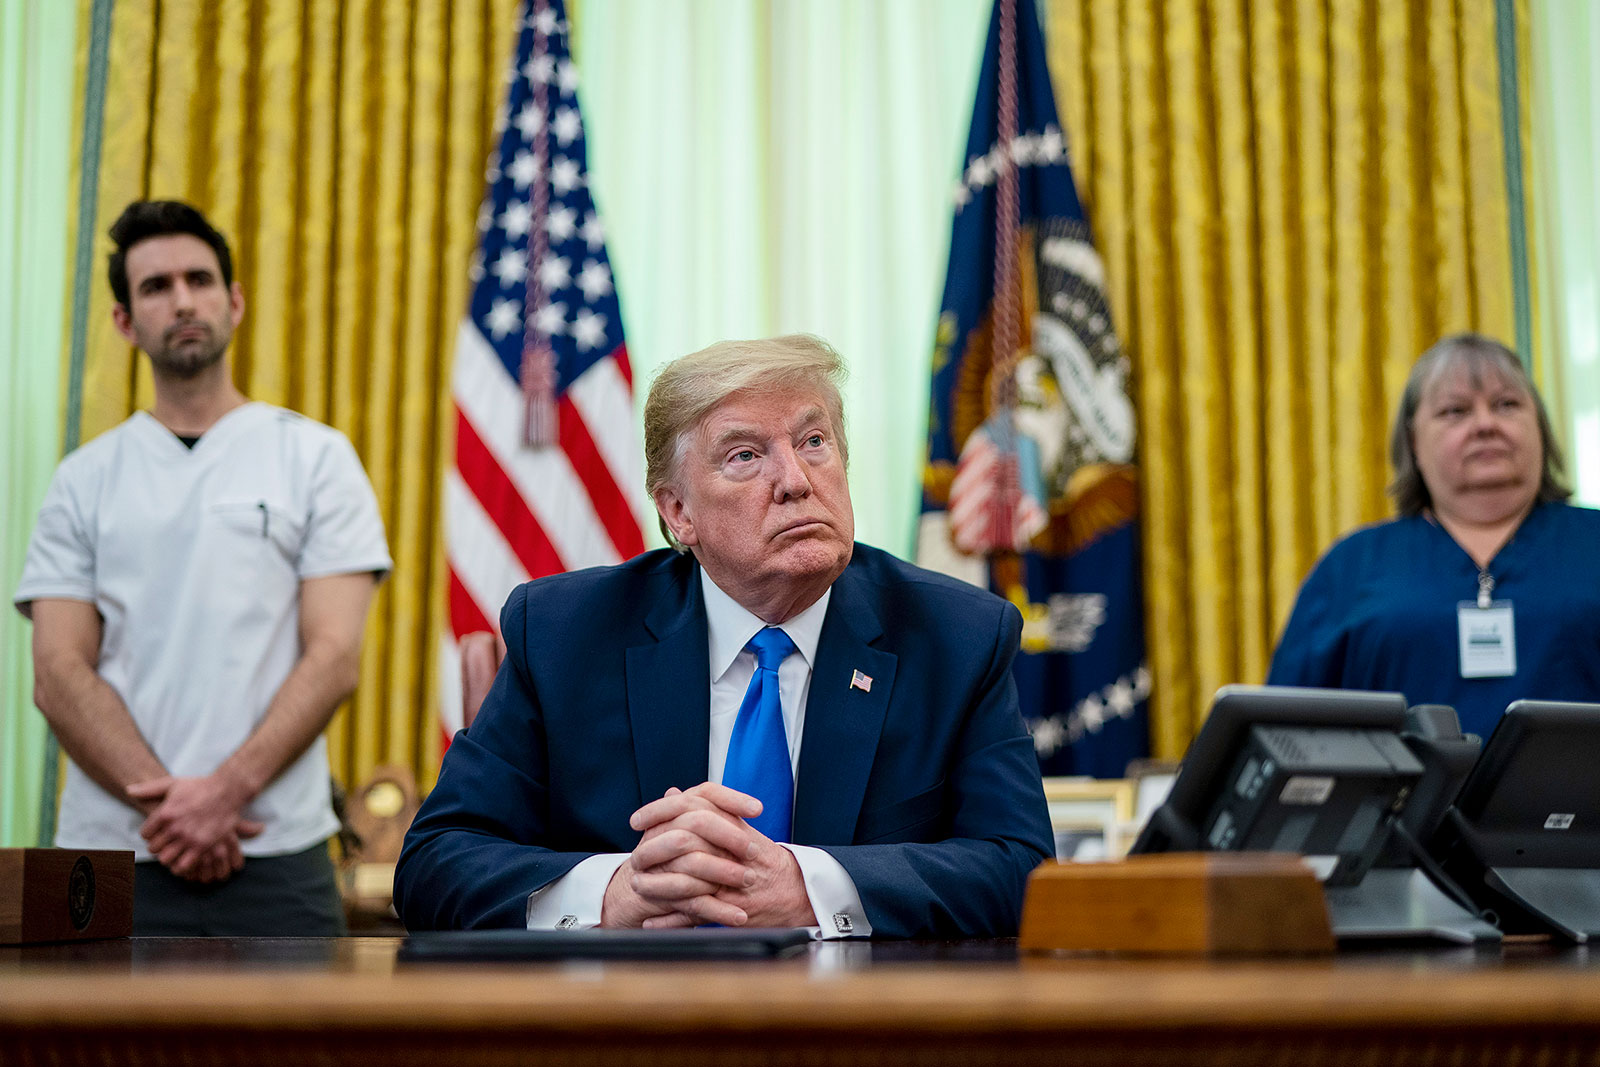 US President Donald Trump talks to reporters after signing a proclamation honoring National Nurses Day in the Oval Office at the White House on Wednesday.